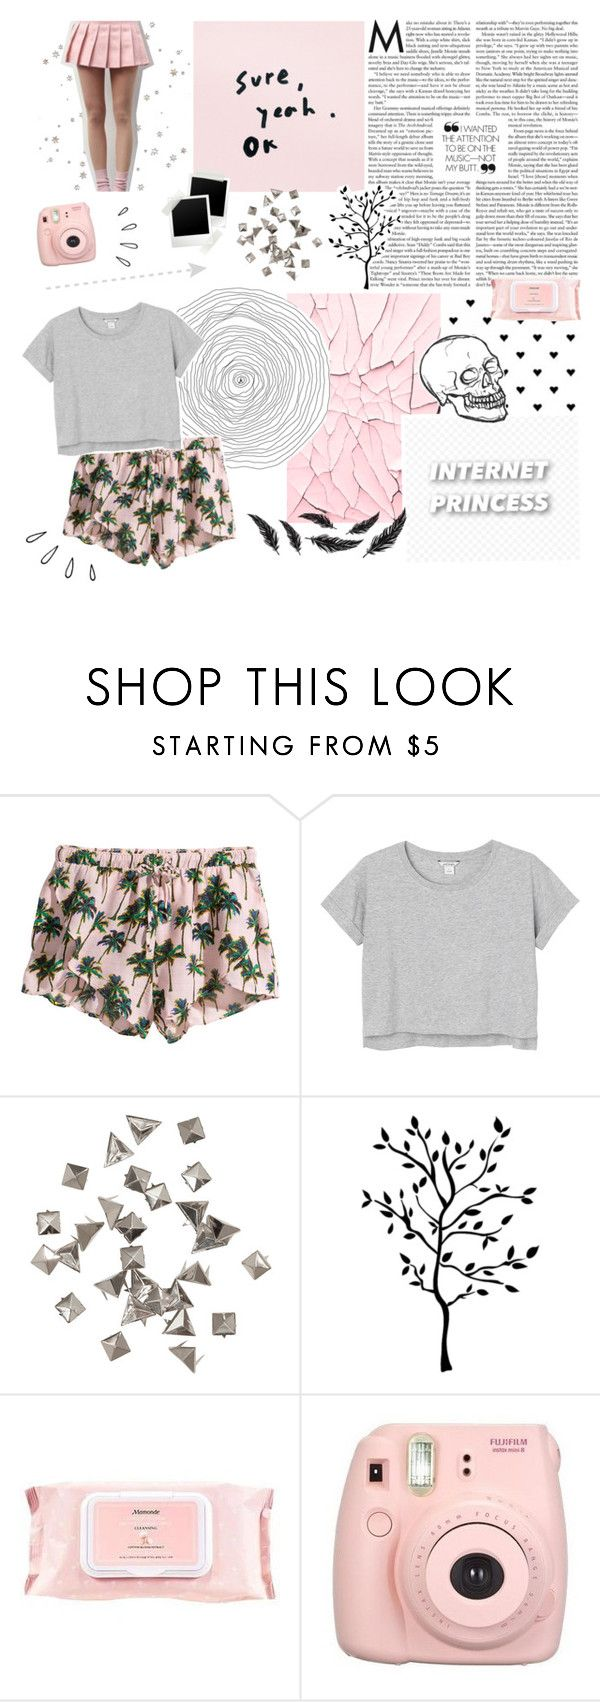 """""""i'm grown now"""" by lucidmoon ❤ liked on Polyvore featuring H&M, Monki, RoomMates Decor, Mamonde, Fujifilm and Old Navy"""